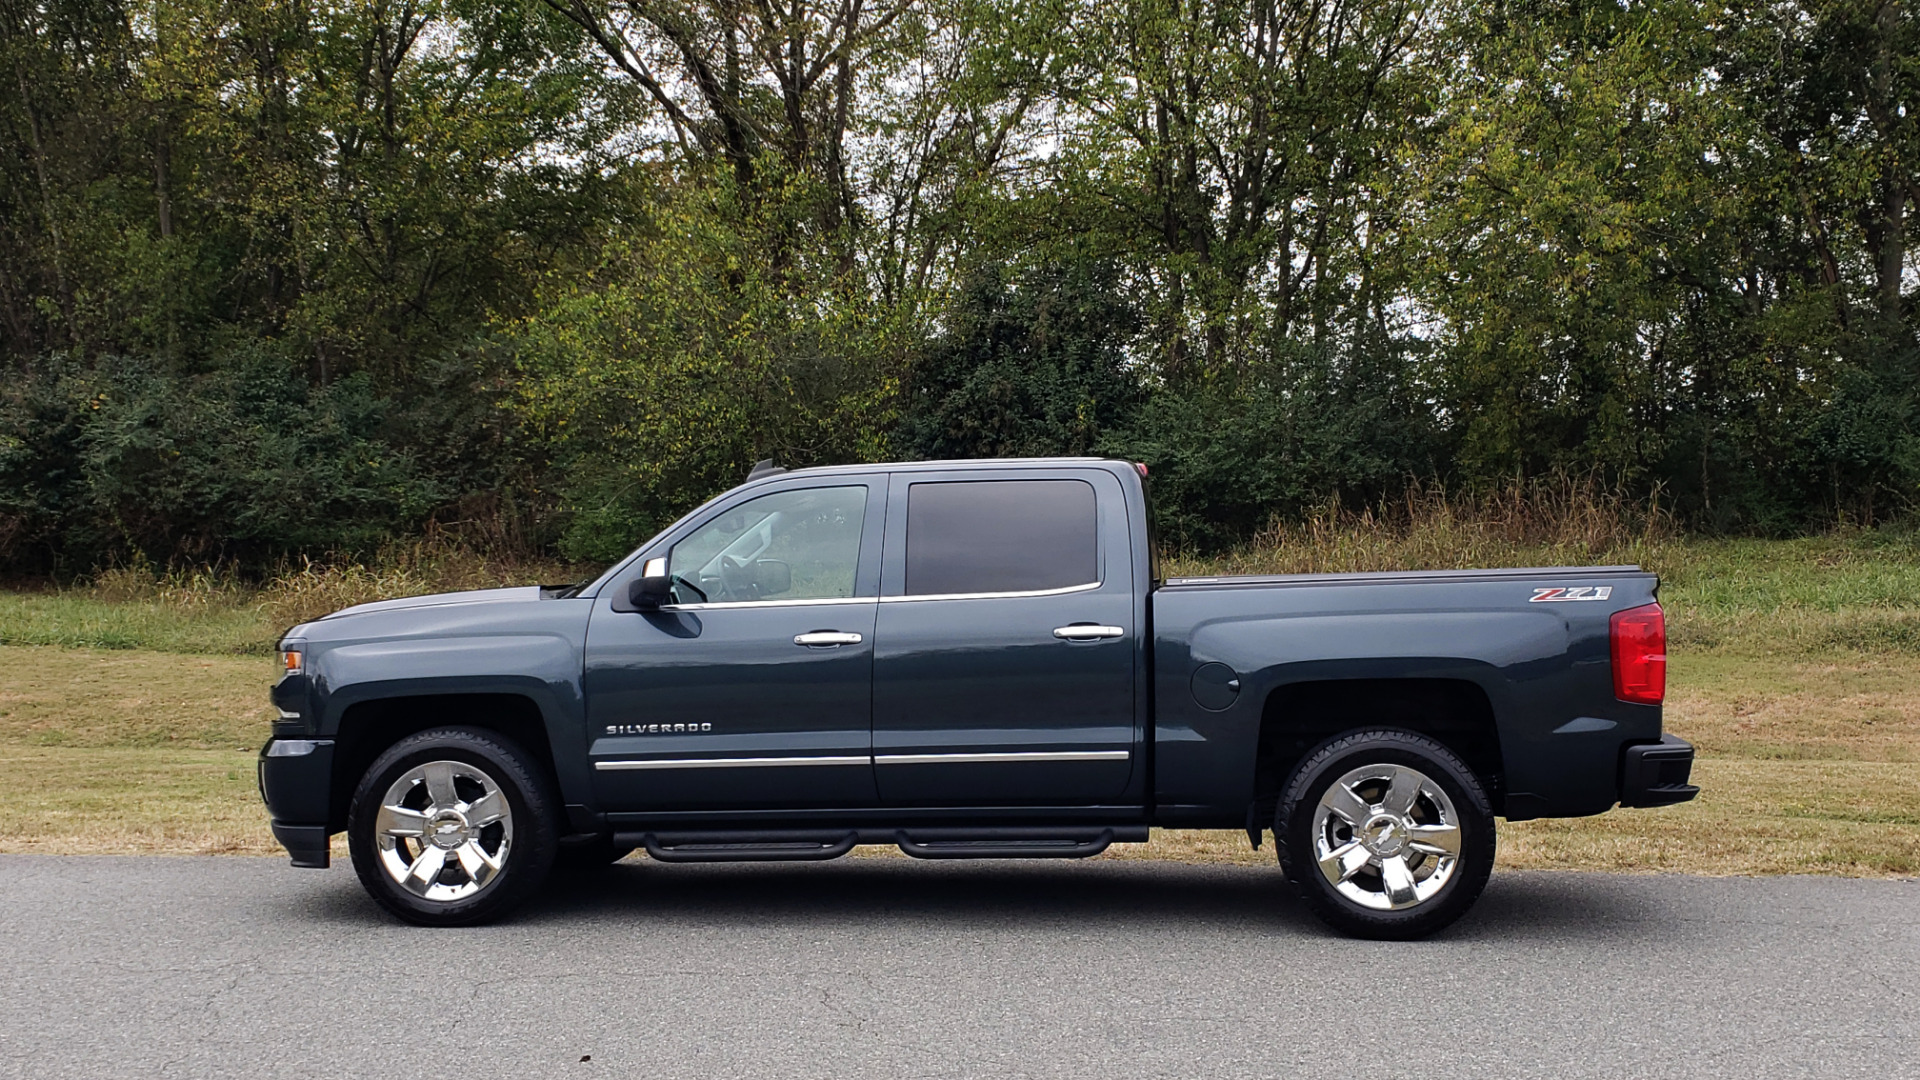 Used 2017 Chevrolet SILVERADO 1500 LTZ 4WD / NAV / BOSE / LEATHER / CAMERA / LOADED for sale Sold at Formula Imports in Charlotte NC 28227 2